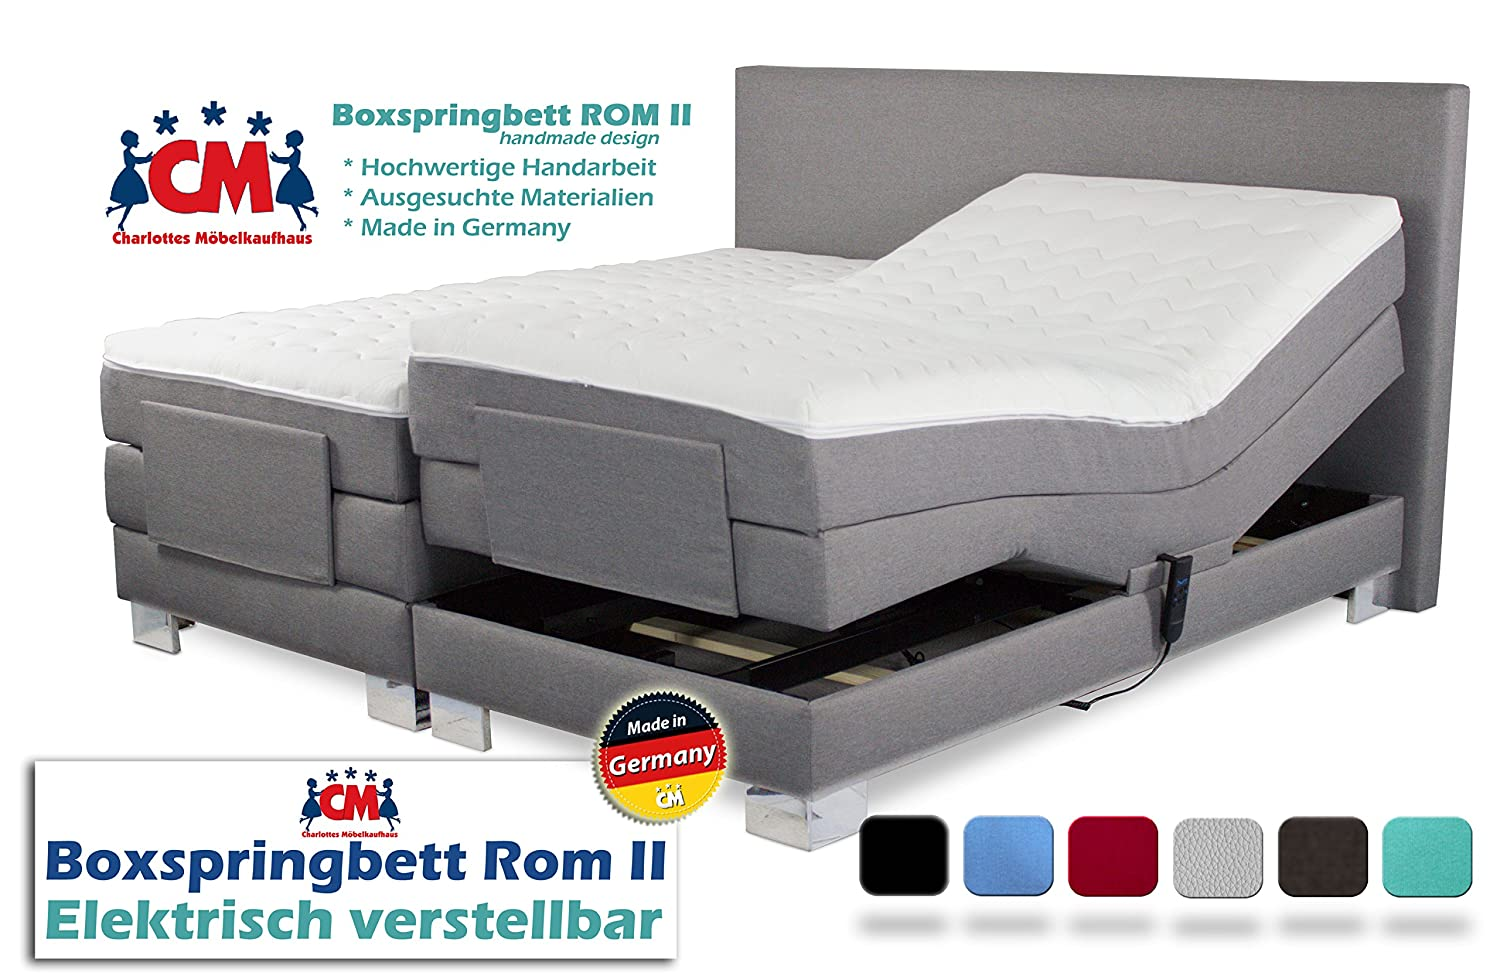 Glamorous Boxspringbett Verstellbar The Best Of Rom Ii Elektrisch In Verschiedenen Farben. Manufaktur